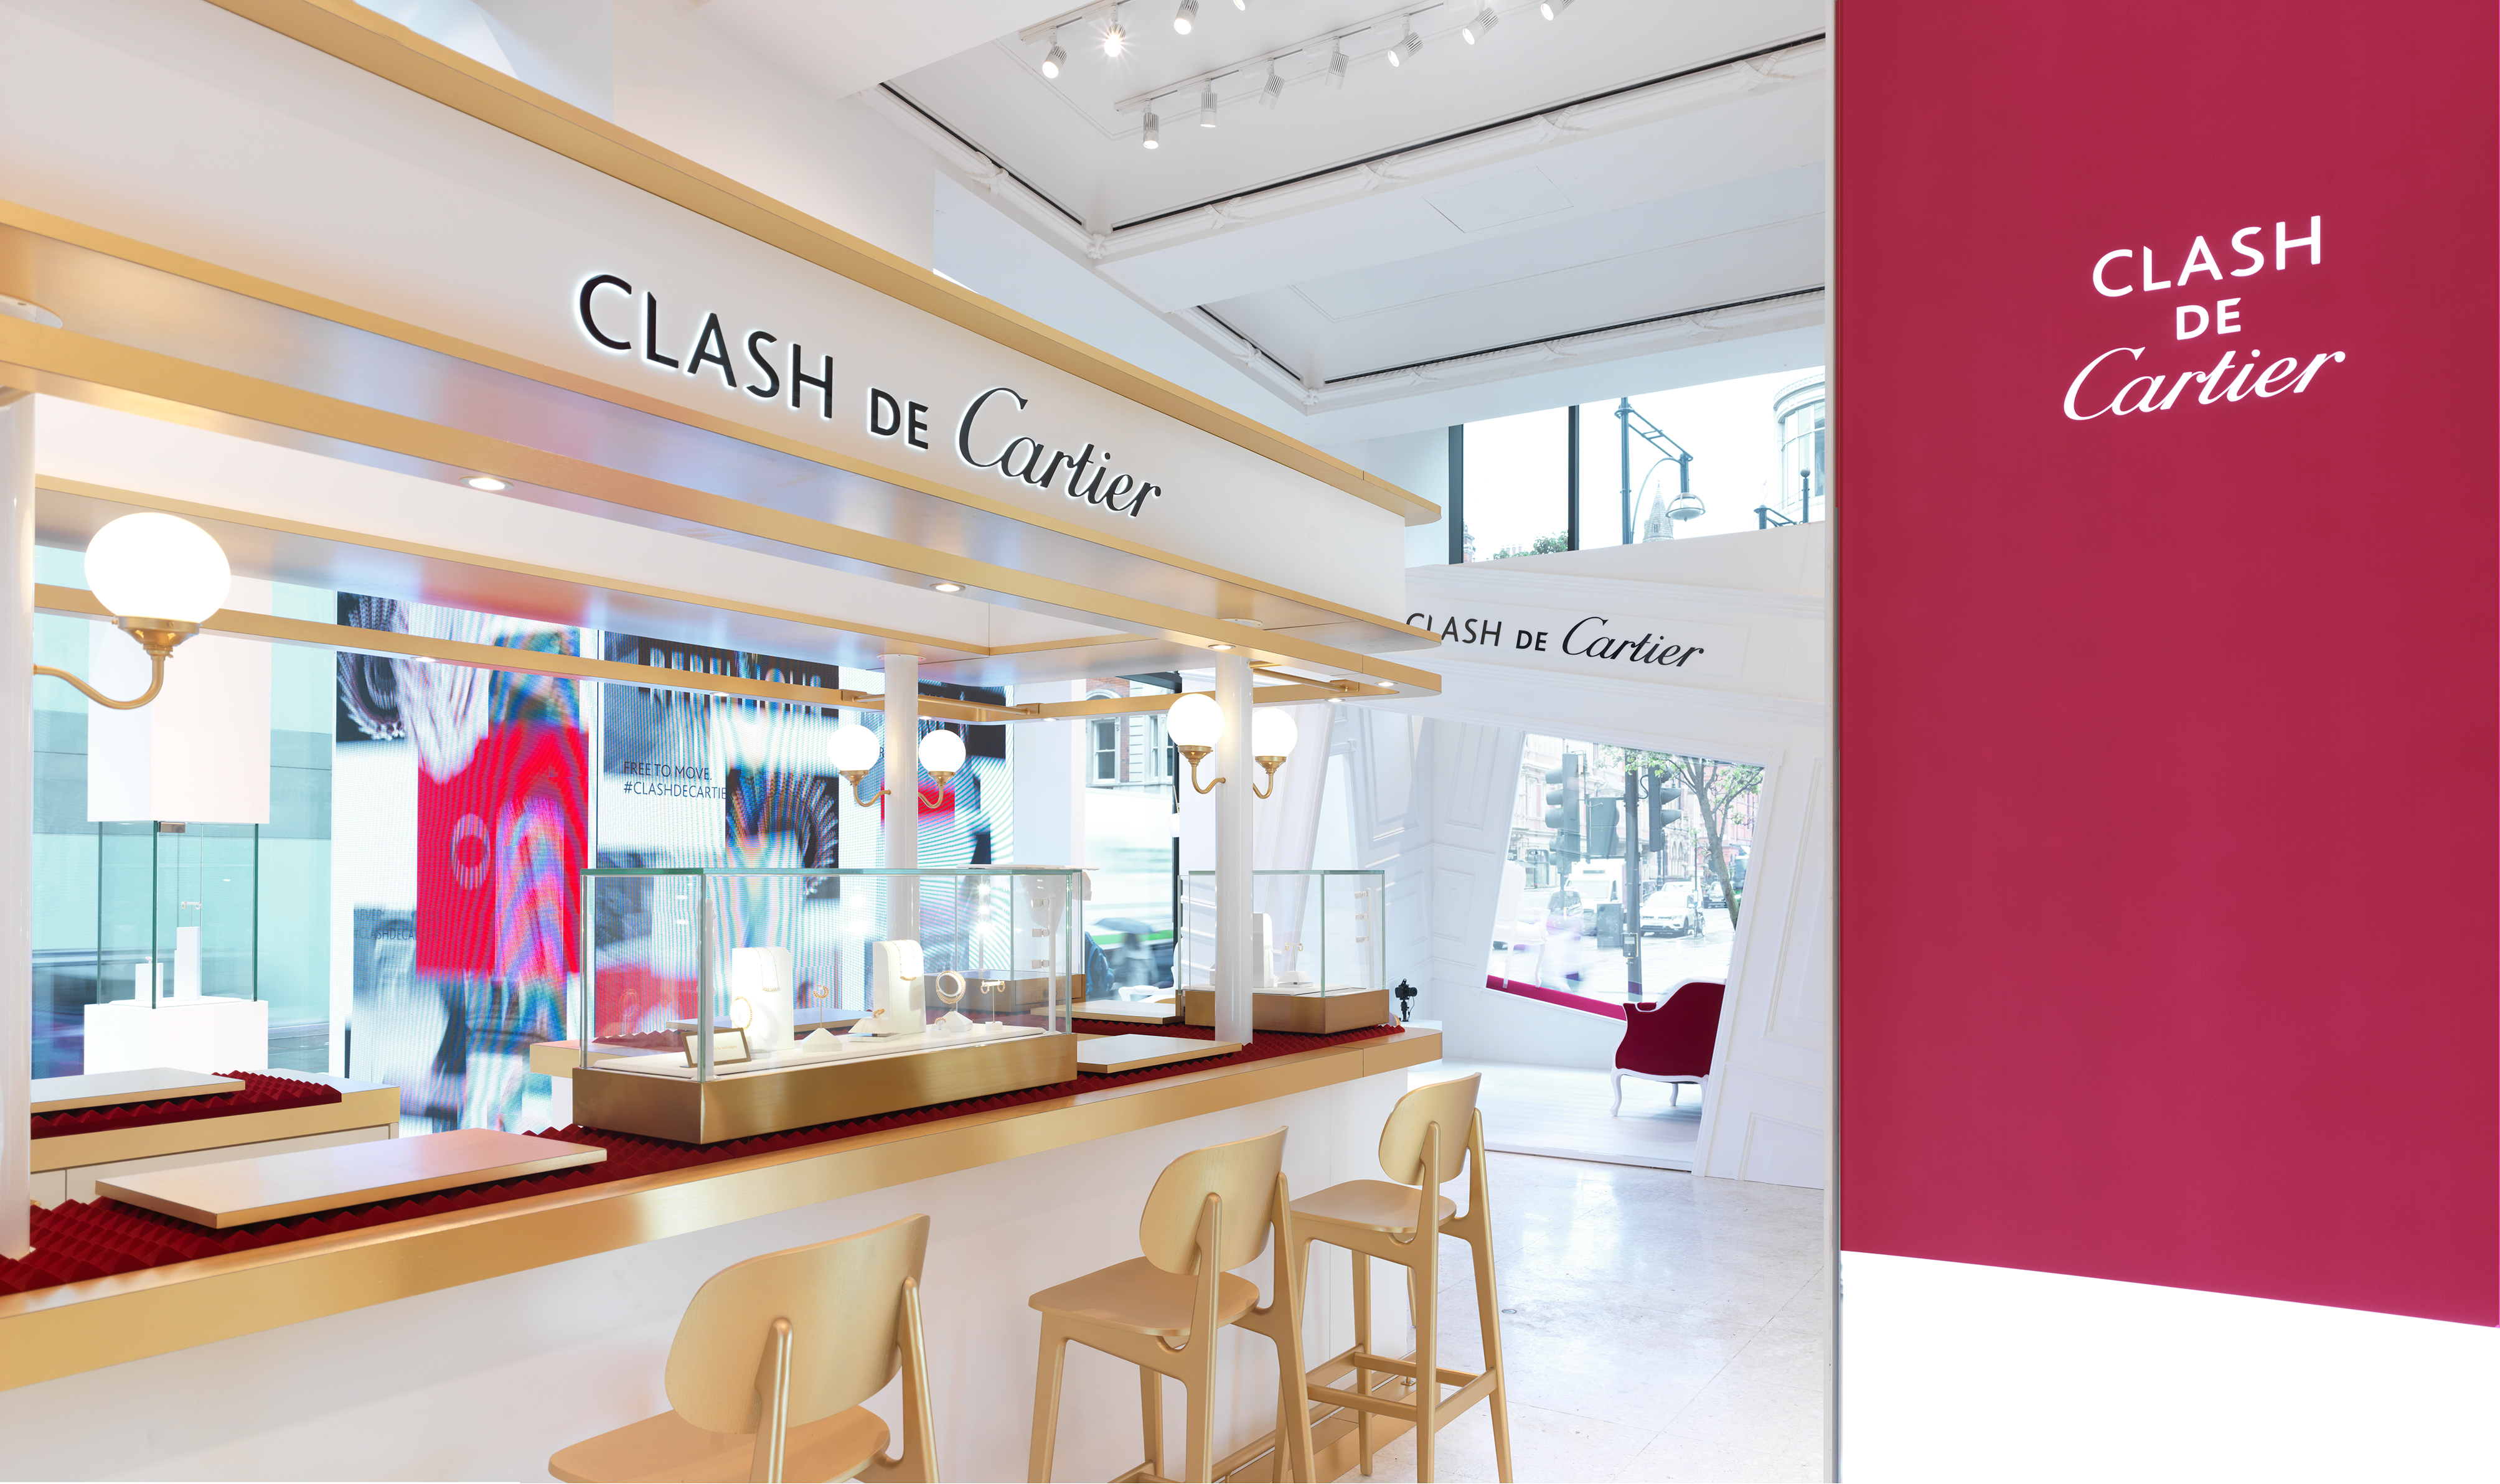 Wonderland Clash de Cartier pop-up selfridges